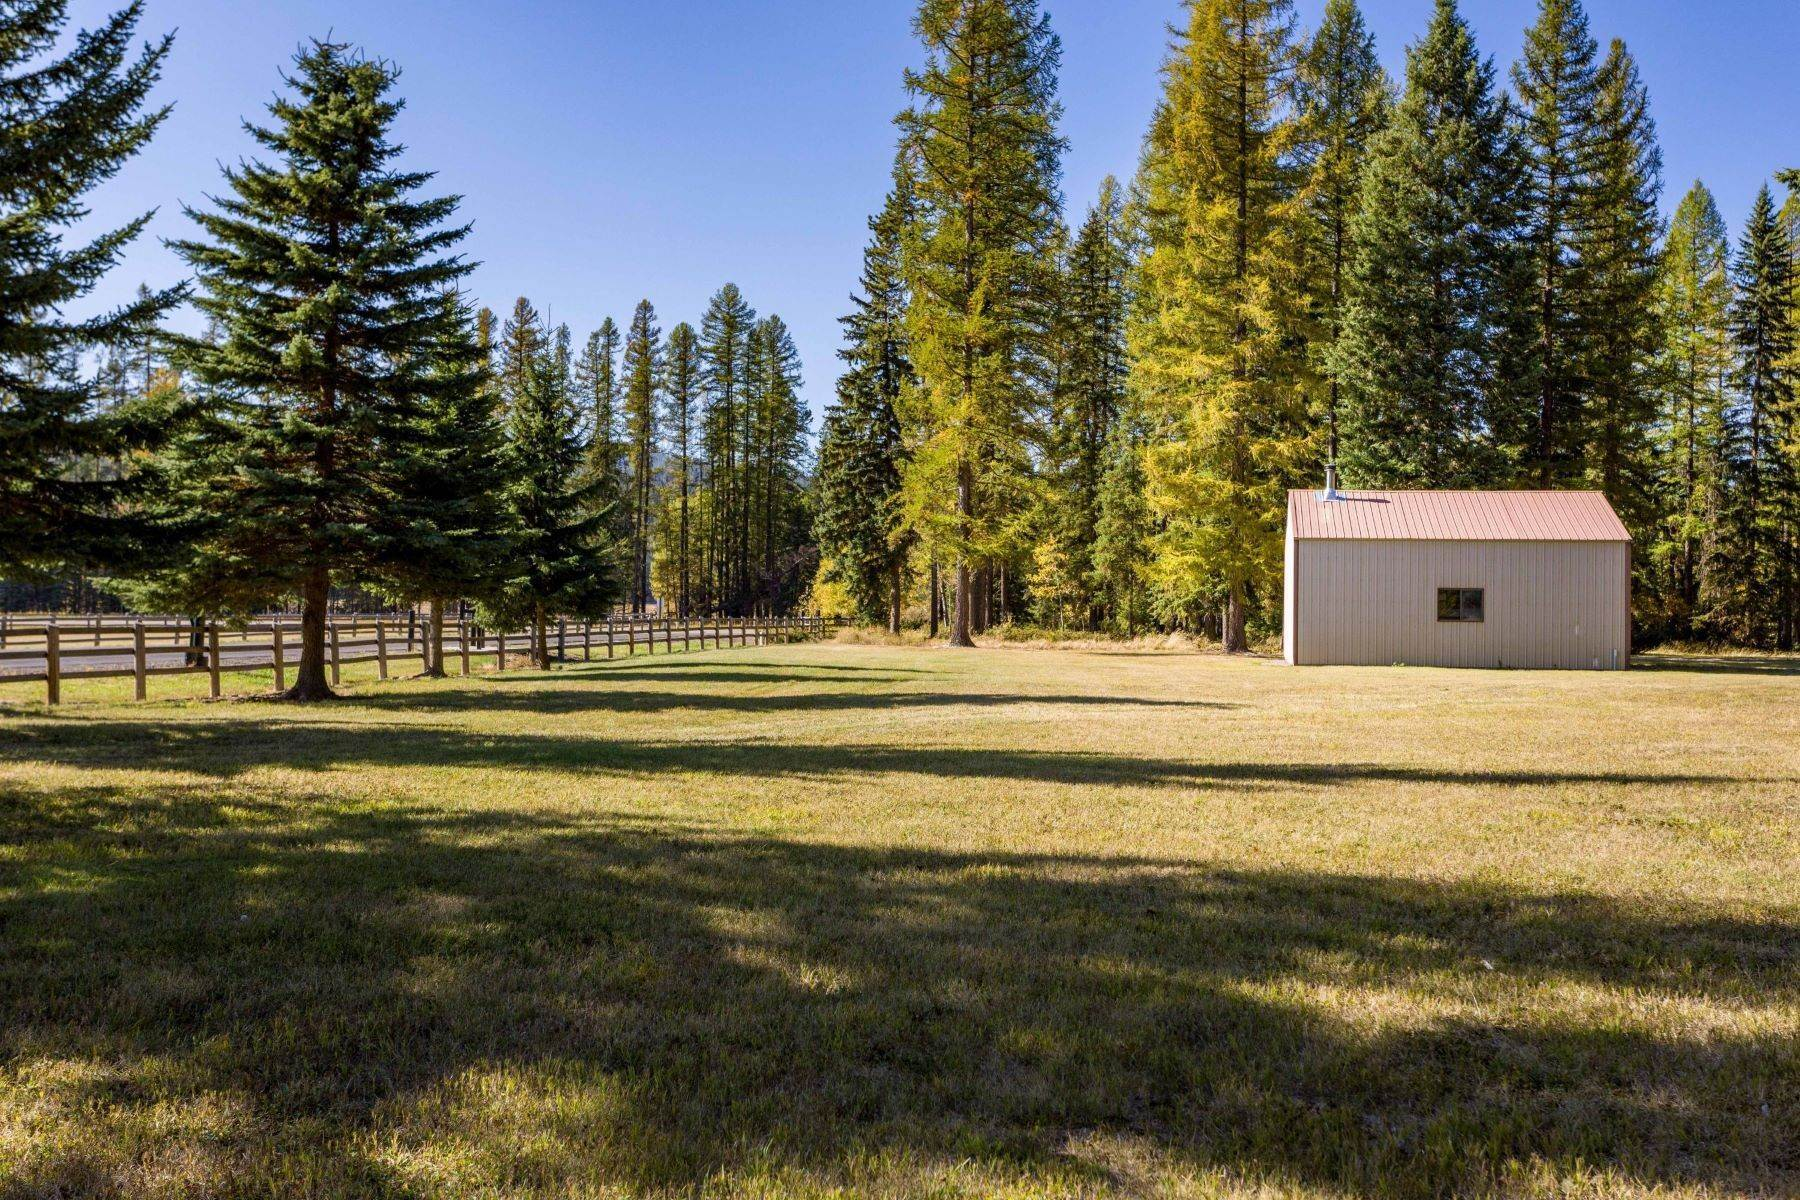 11. Land for Sale at Northwest Montana Forest, Meadows and Ponds 295 Garland Lane Whitefish, Montana 59937 United States